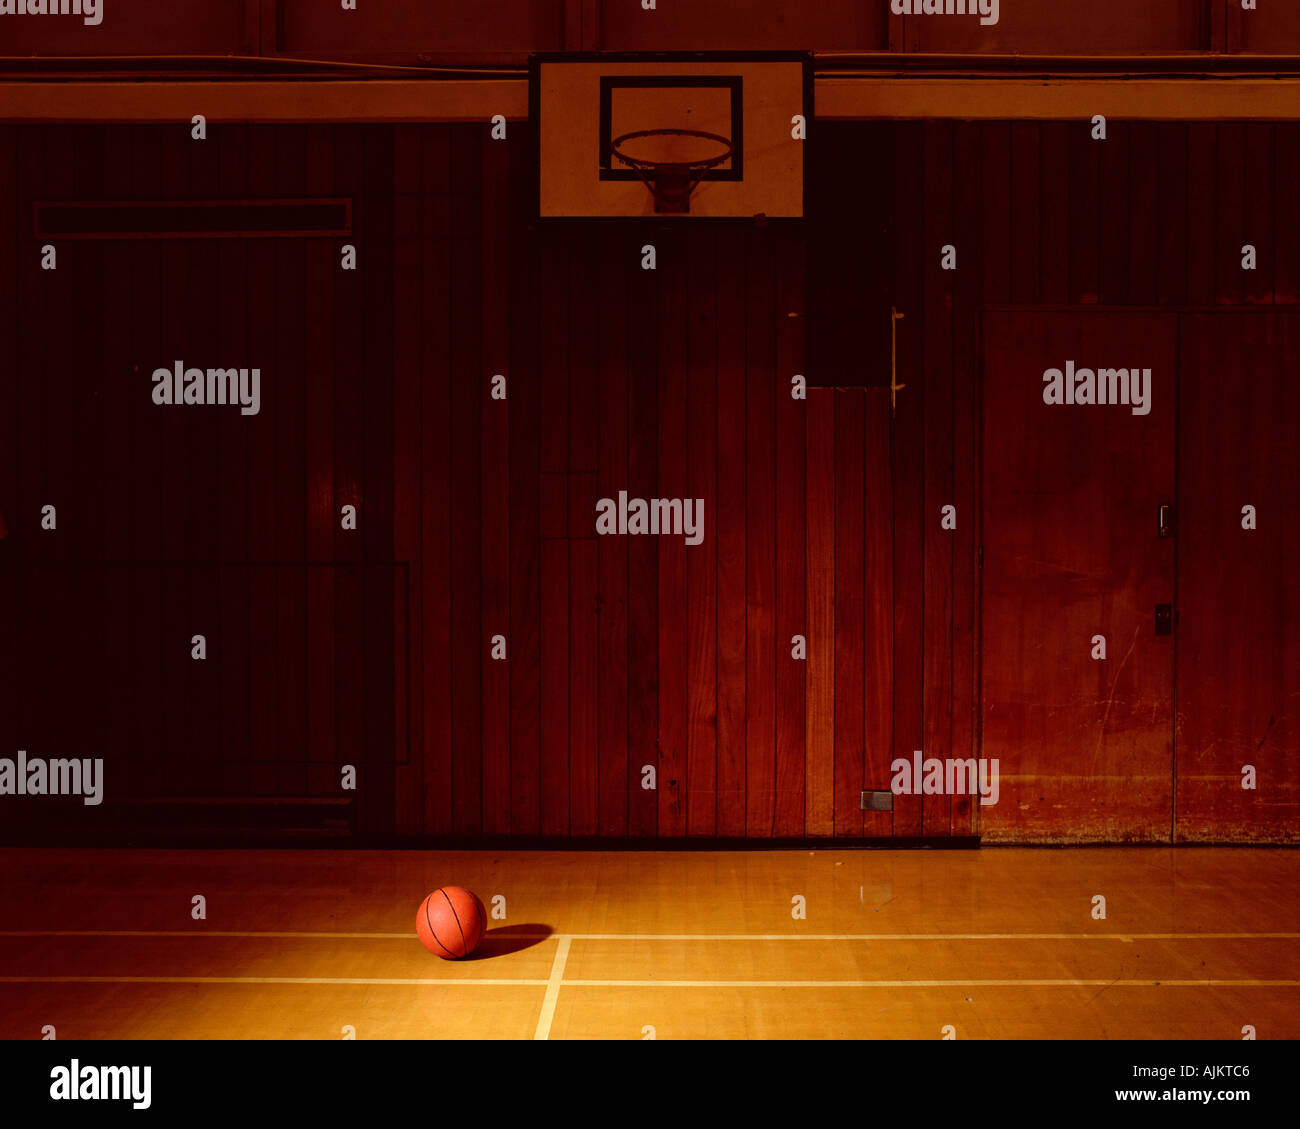 Empty basketball court - Stock Image